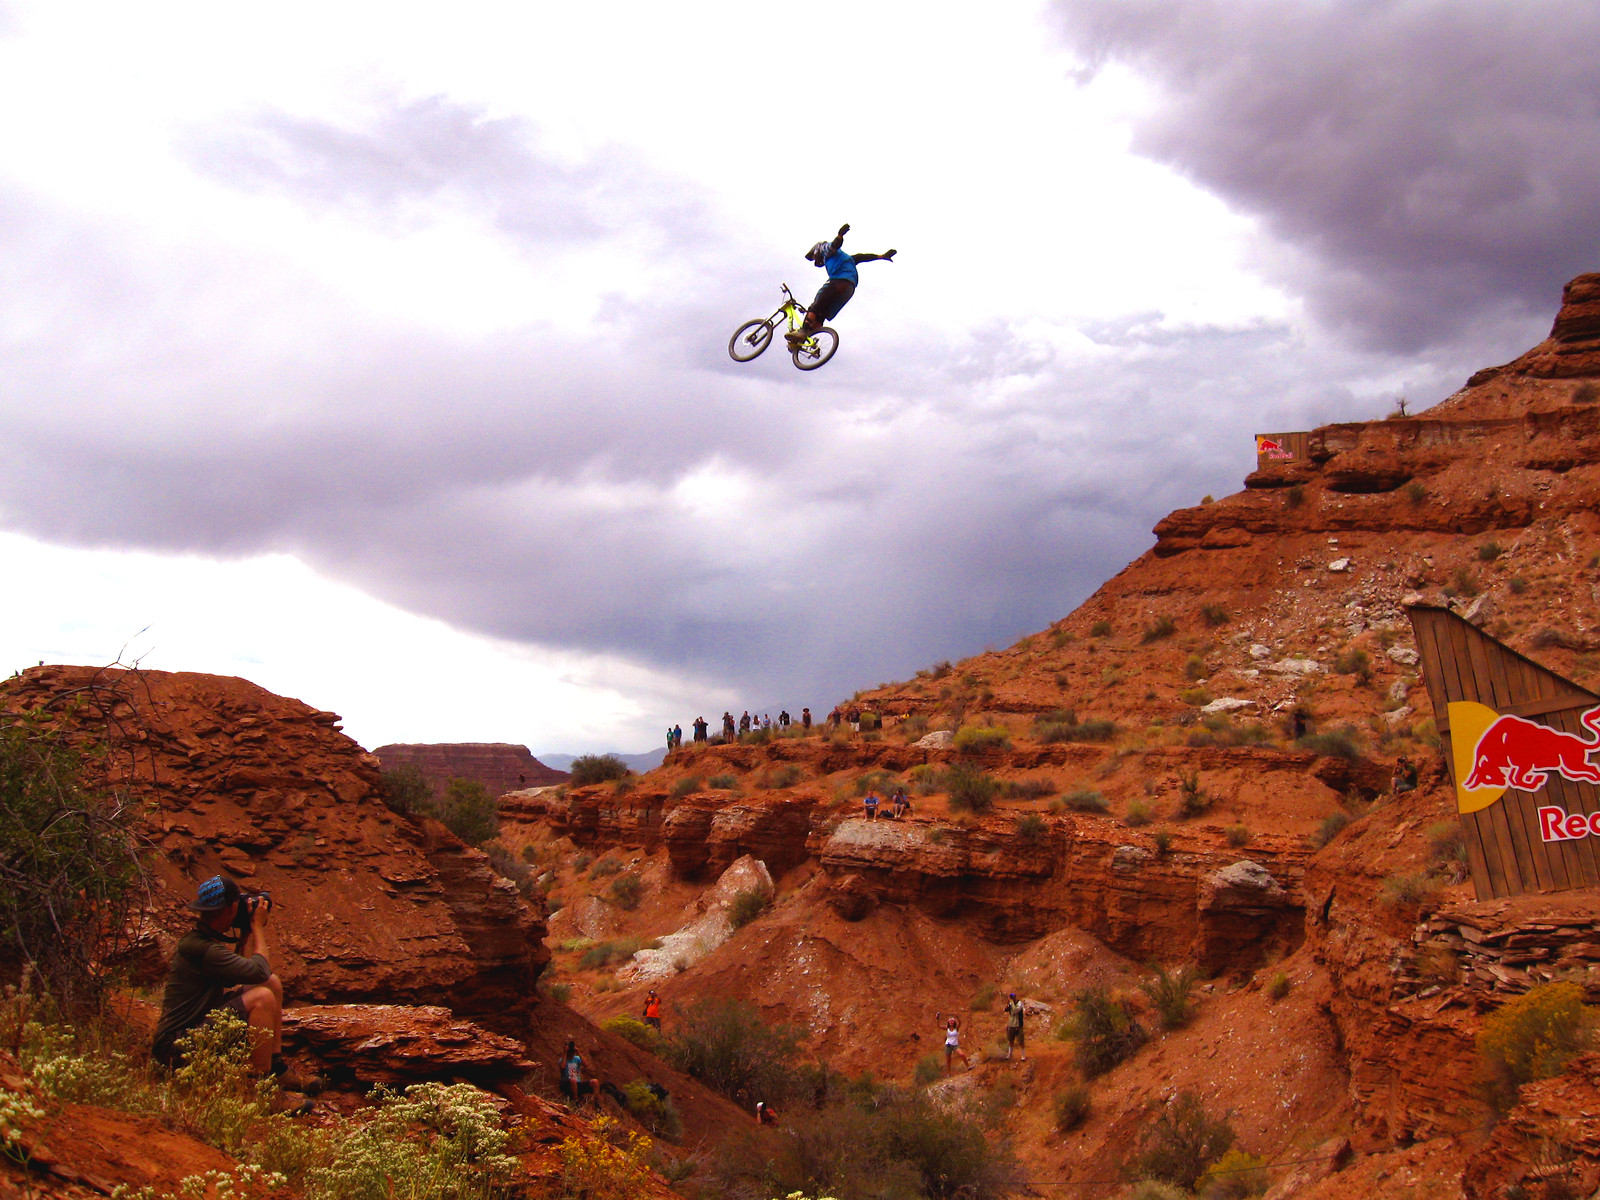 Thomas Vanderham Suicide No-Hander - Bike Doc - Mountain Biking Pictures - Vital MTB